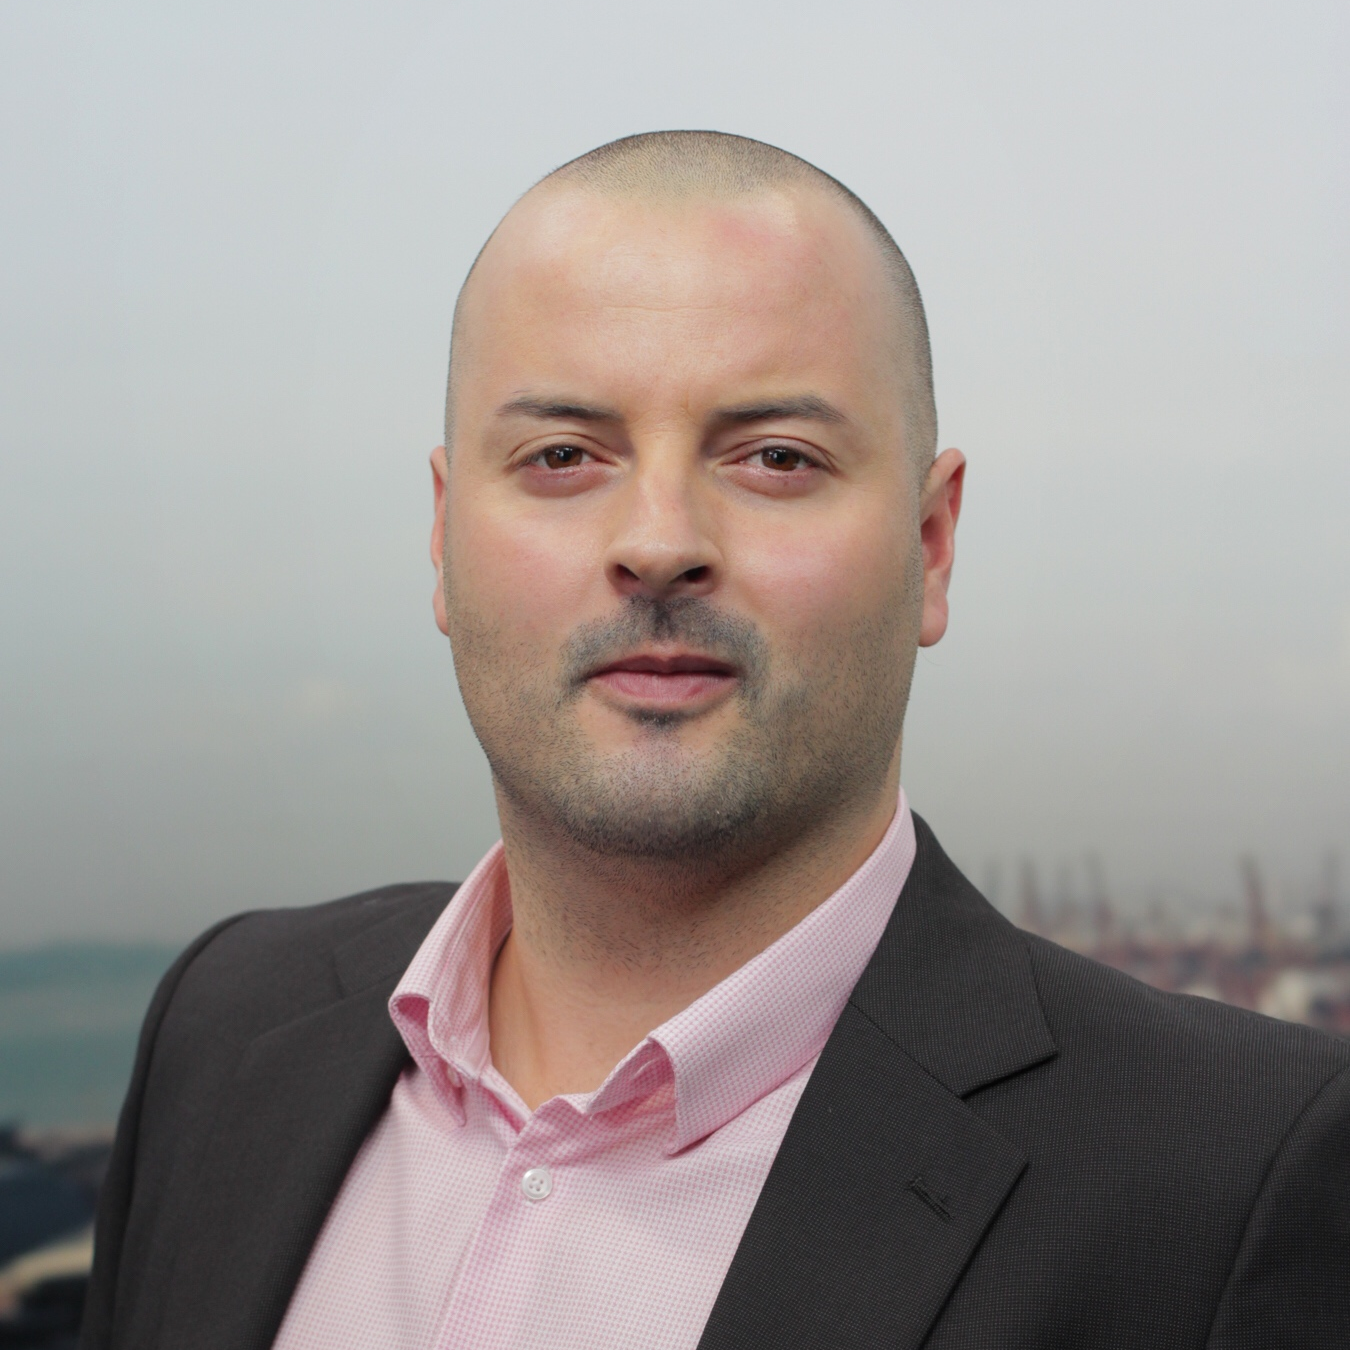 Abache Abreu, Senior Editor, LNG News & Analysis, Asia-Pacific and Middle East at Platts